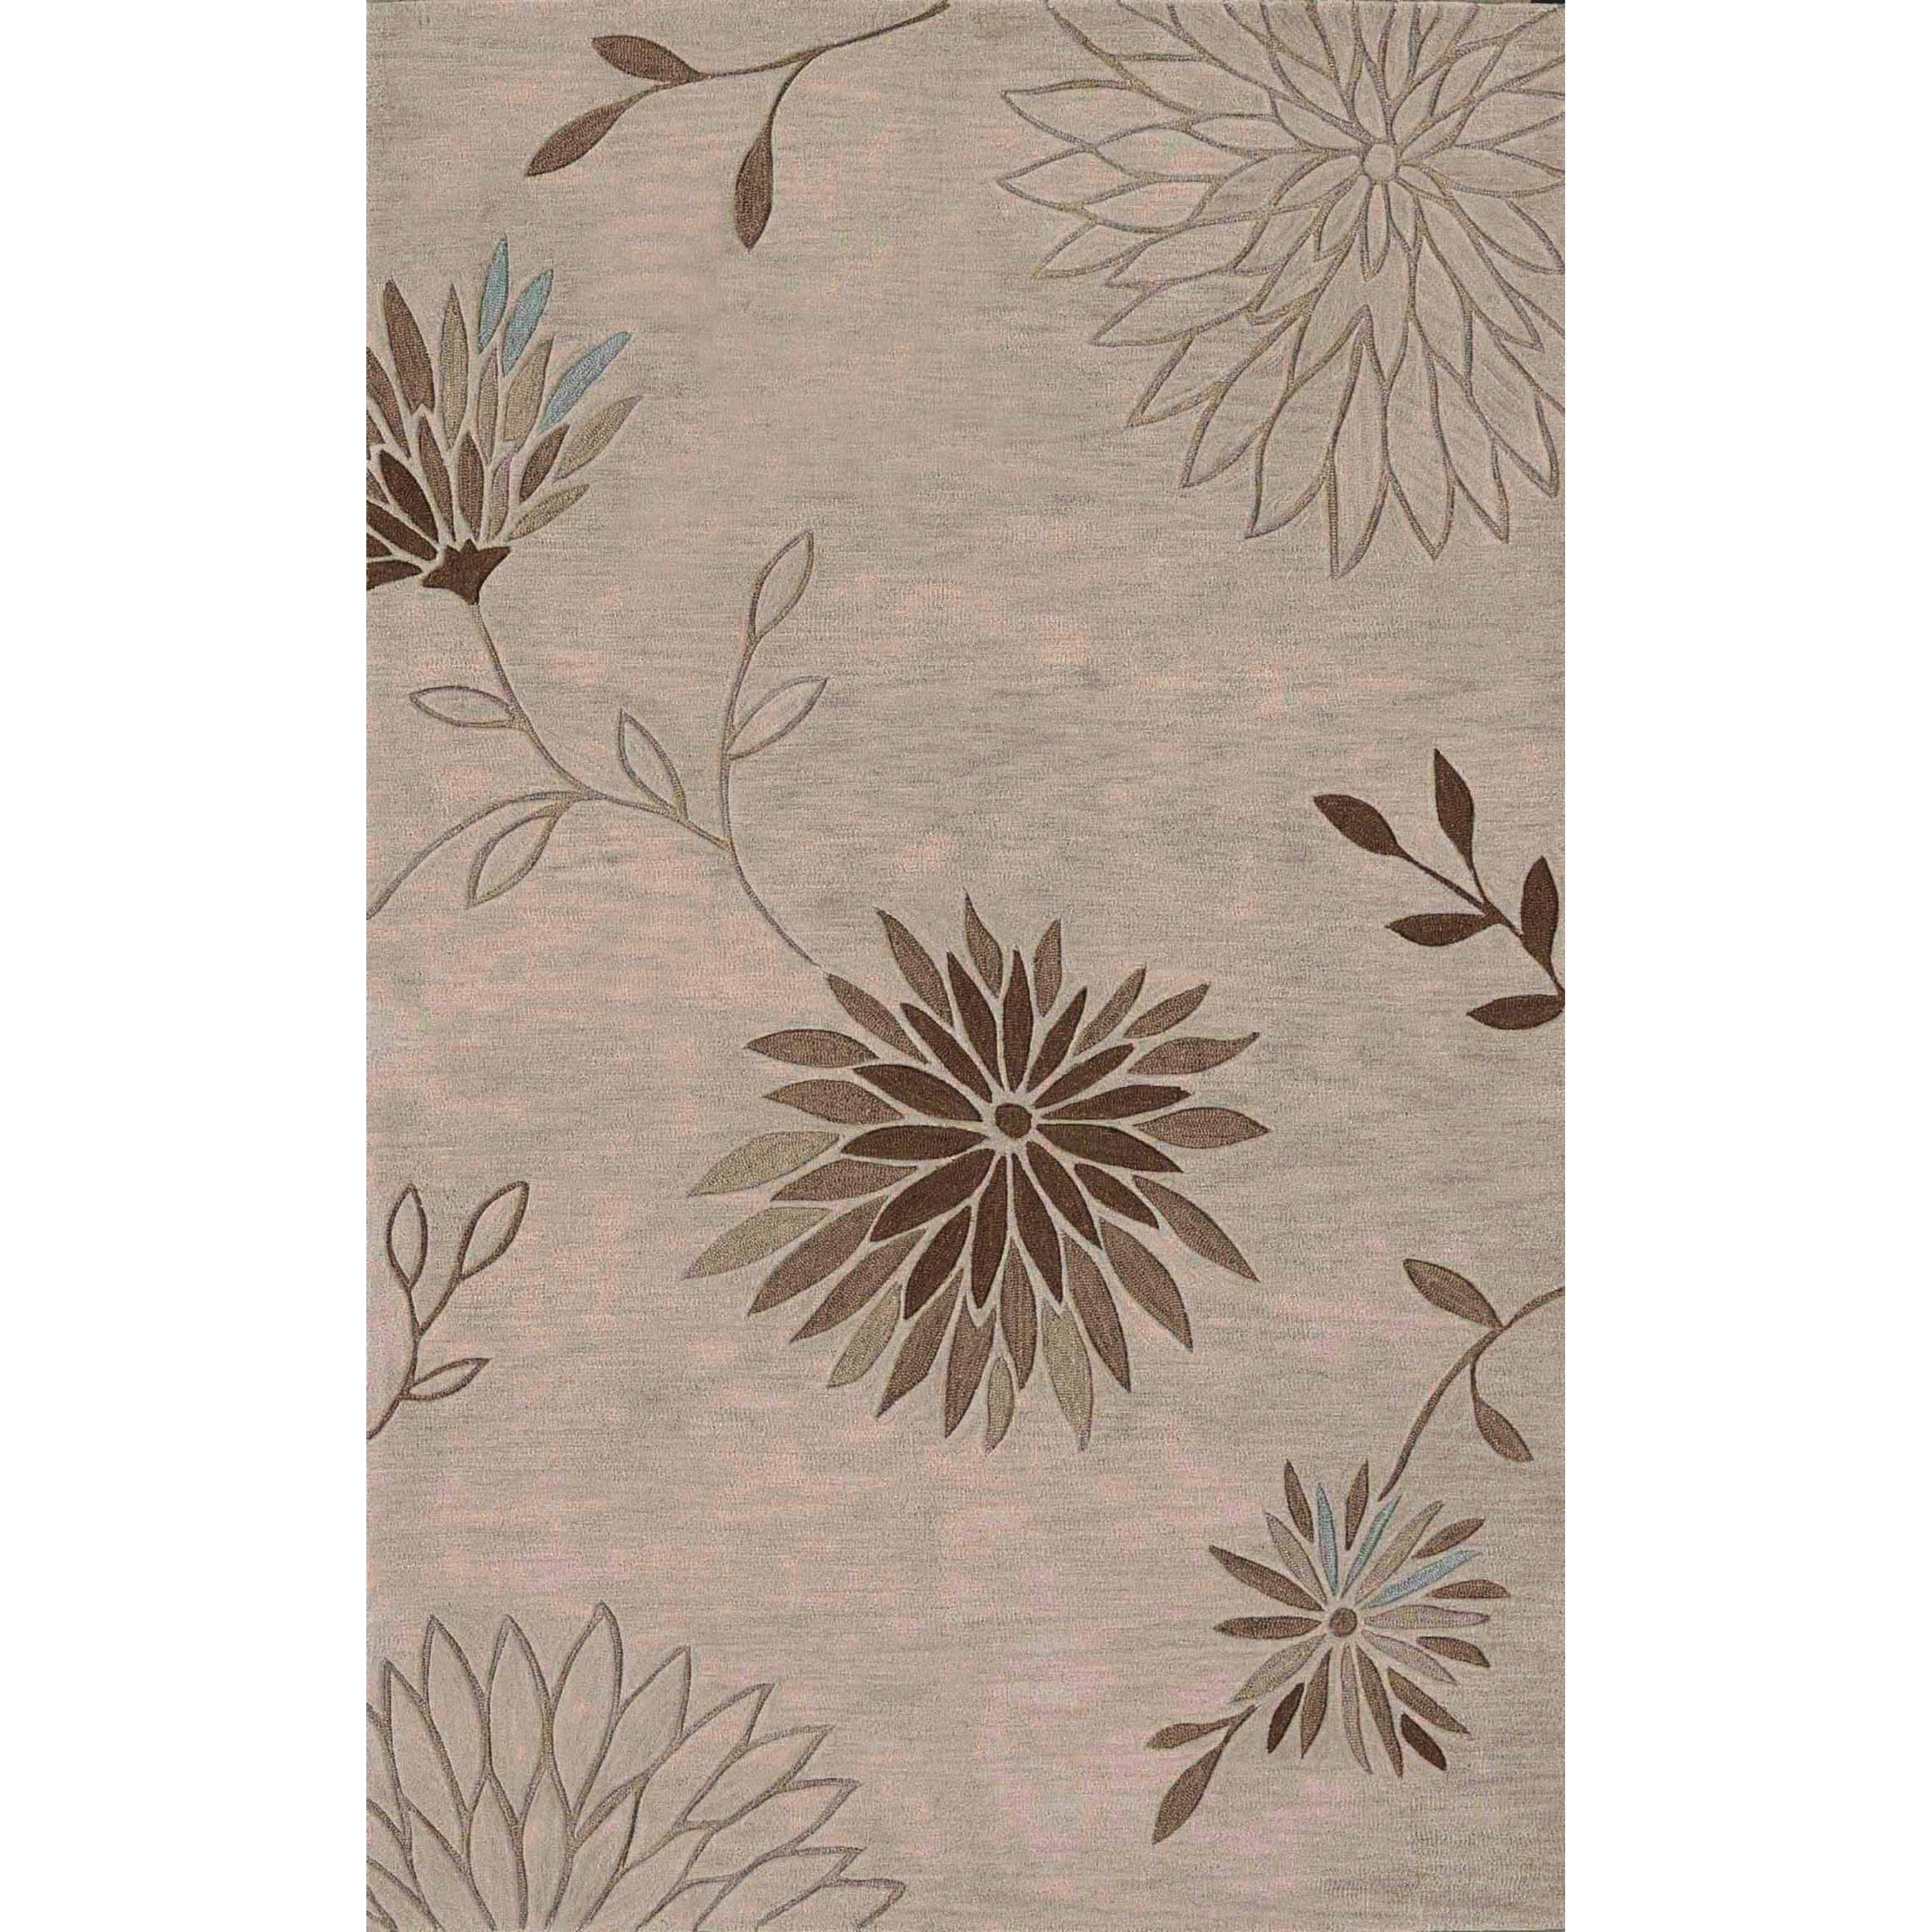 Studio Linen 9'X13' Rug by Dalyn at Arwood's Furniture